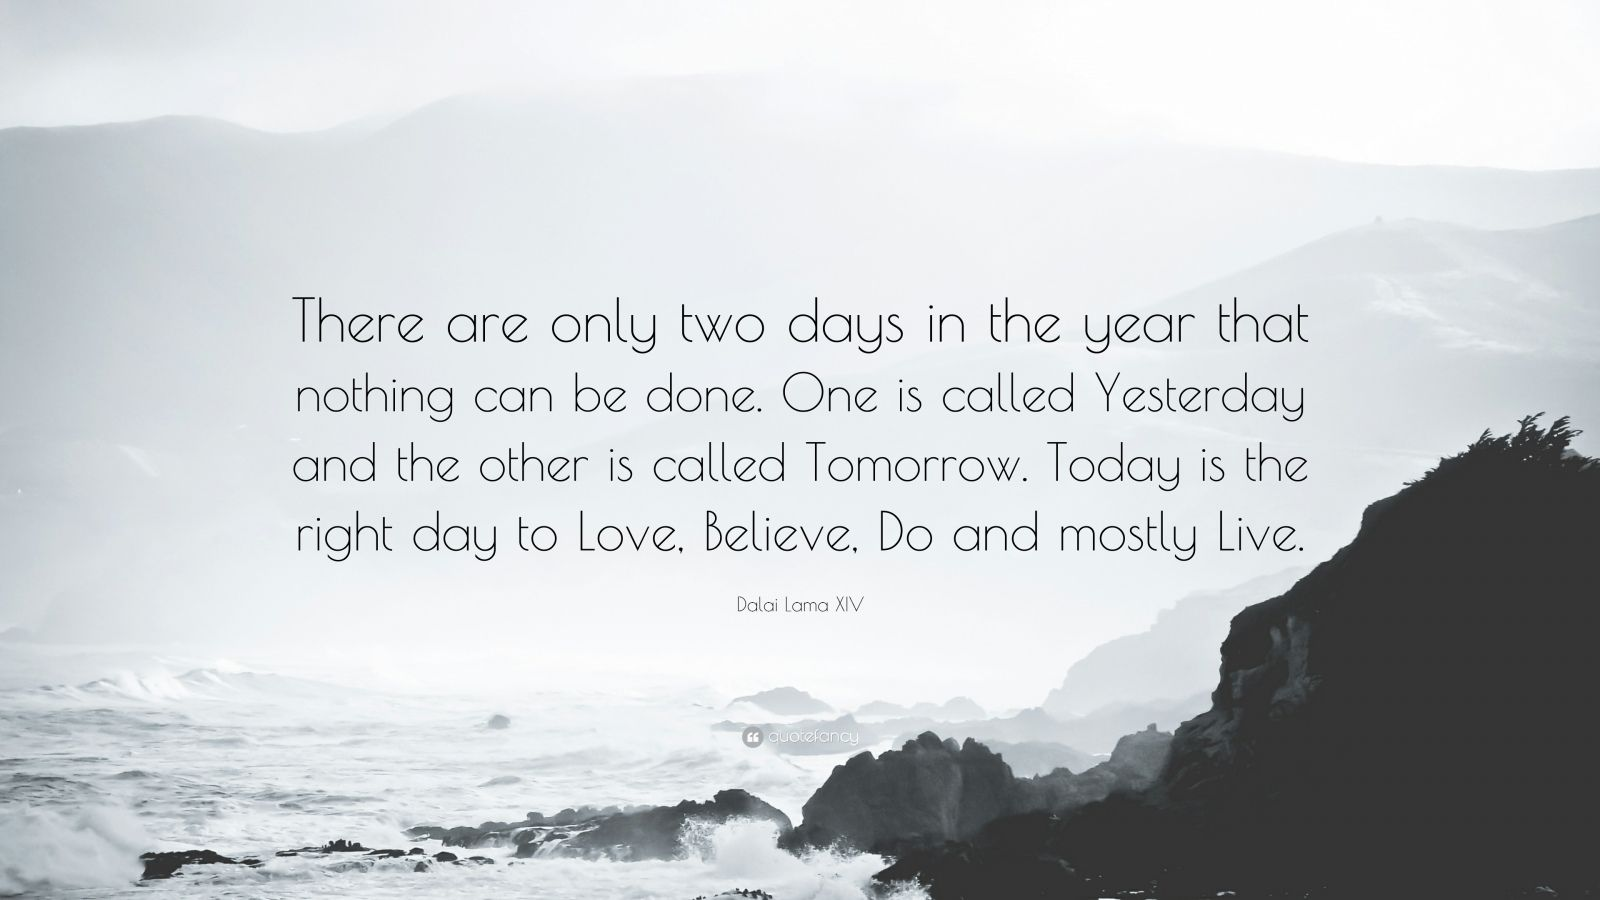 """Dalai Lama XIV Quote: """"There are only two days in the year that nothing can be done. One is called Yesterday and the other is called Tomorrow. Today is the right day to Love, Believe, Do and mostly Live."""""""